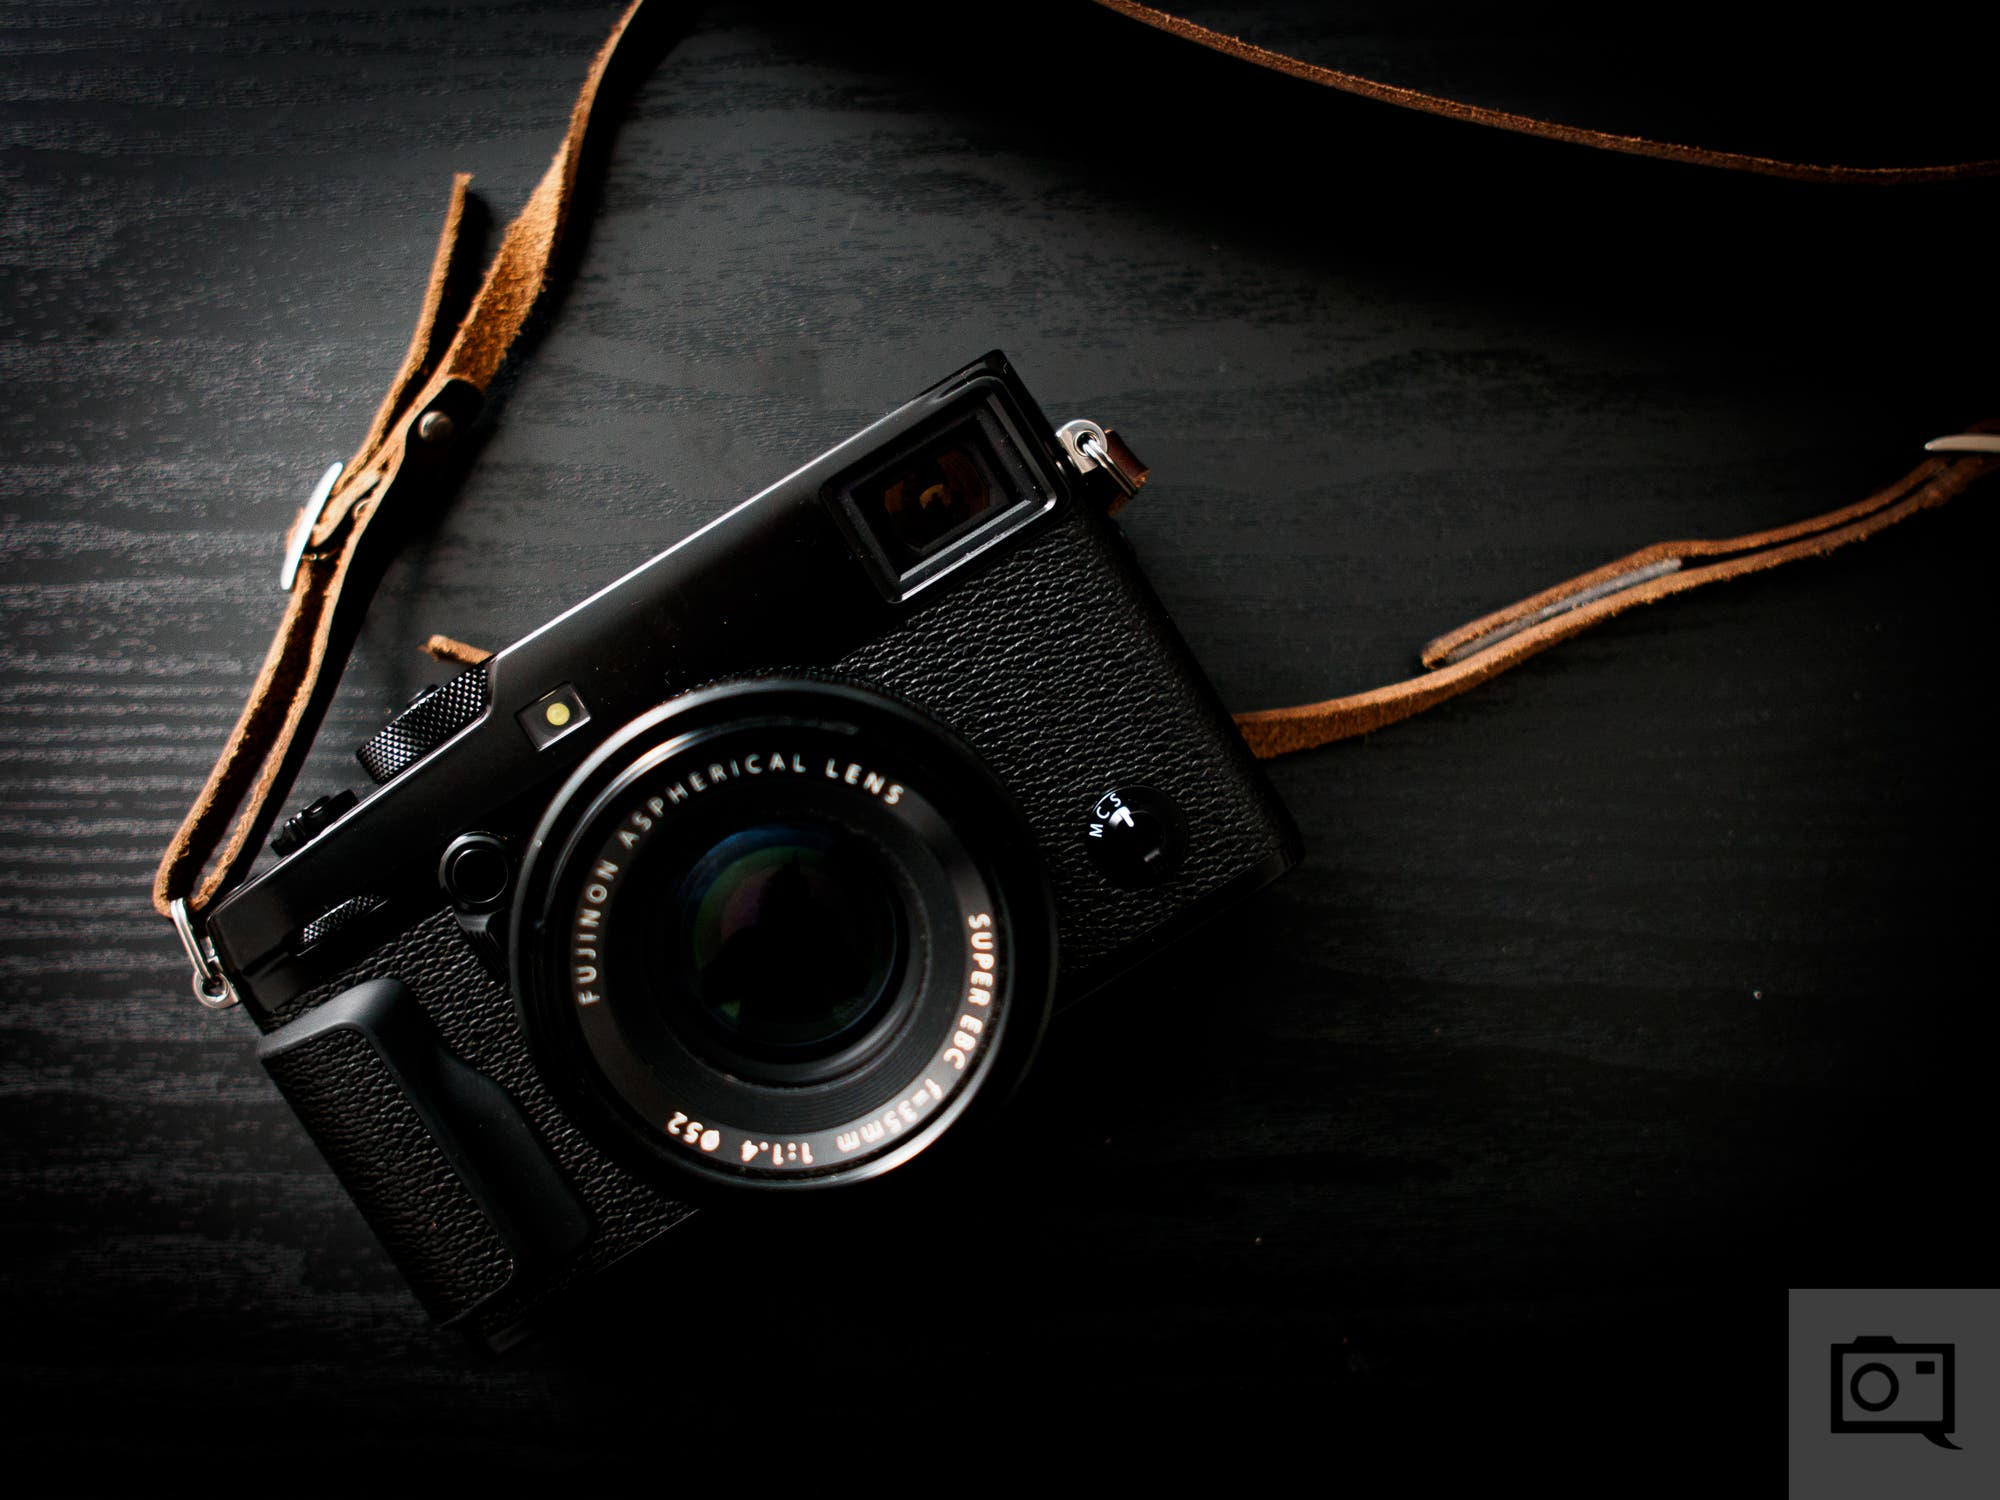 What We Hope Will Be in the Fujifilm X-Pro 3